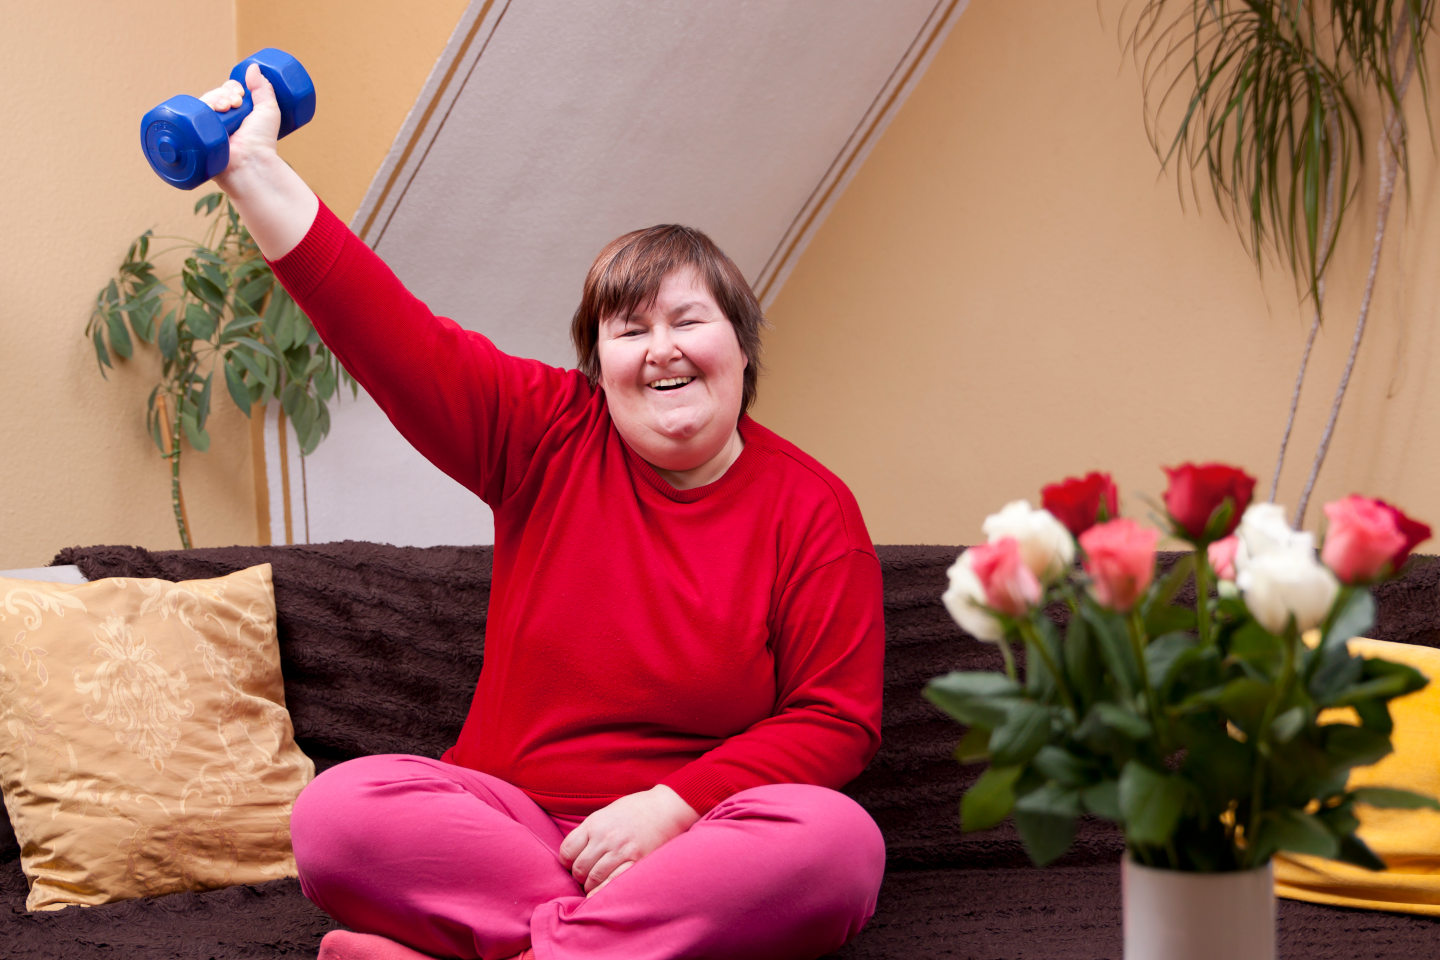 Mentally disabled woman shows her strength with a dumbbell. She has MS.